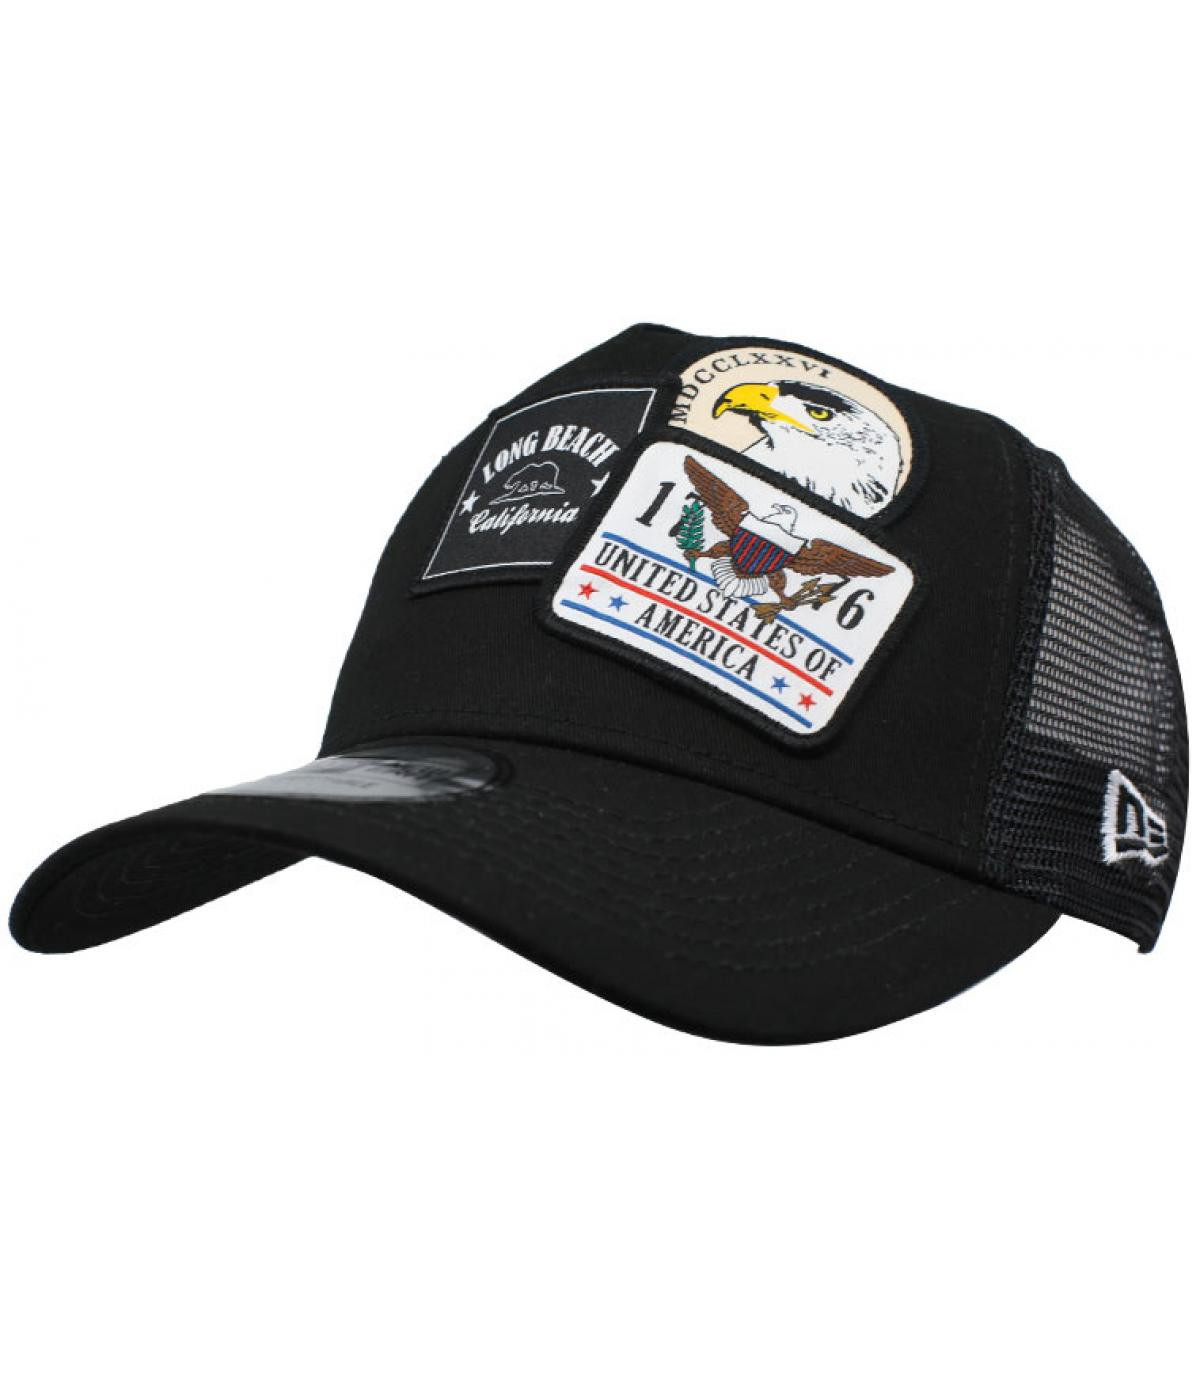 Détails Trucker Overlapping patch black - image 2